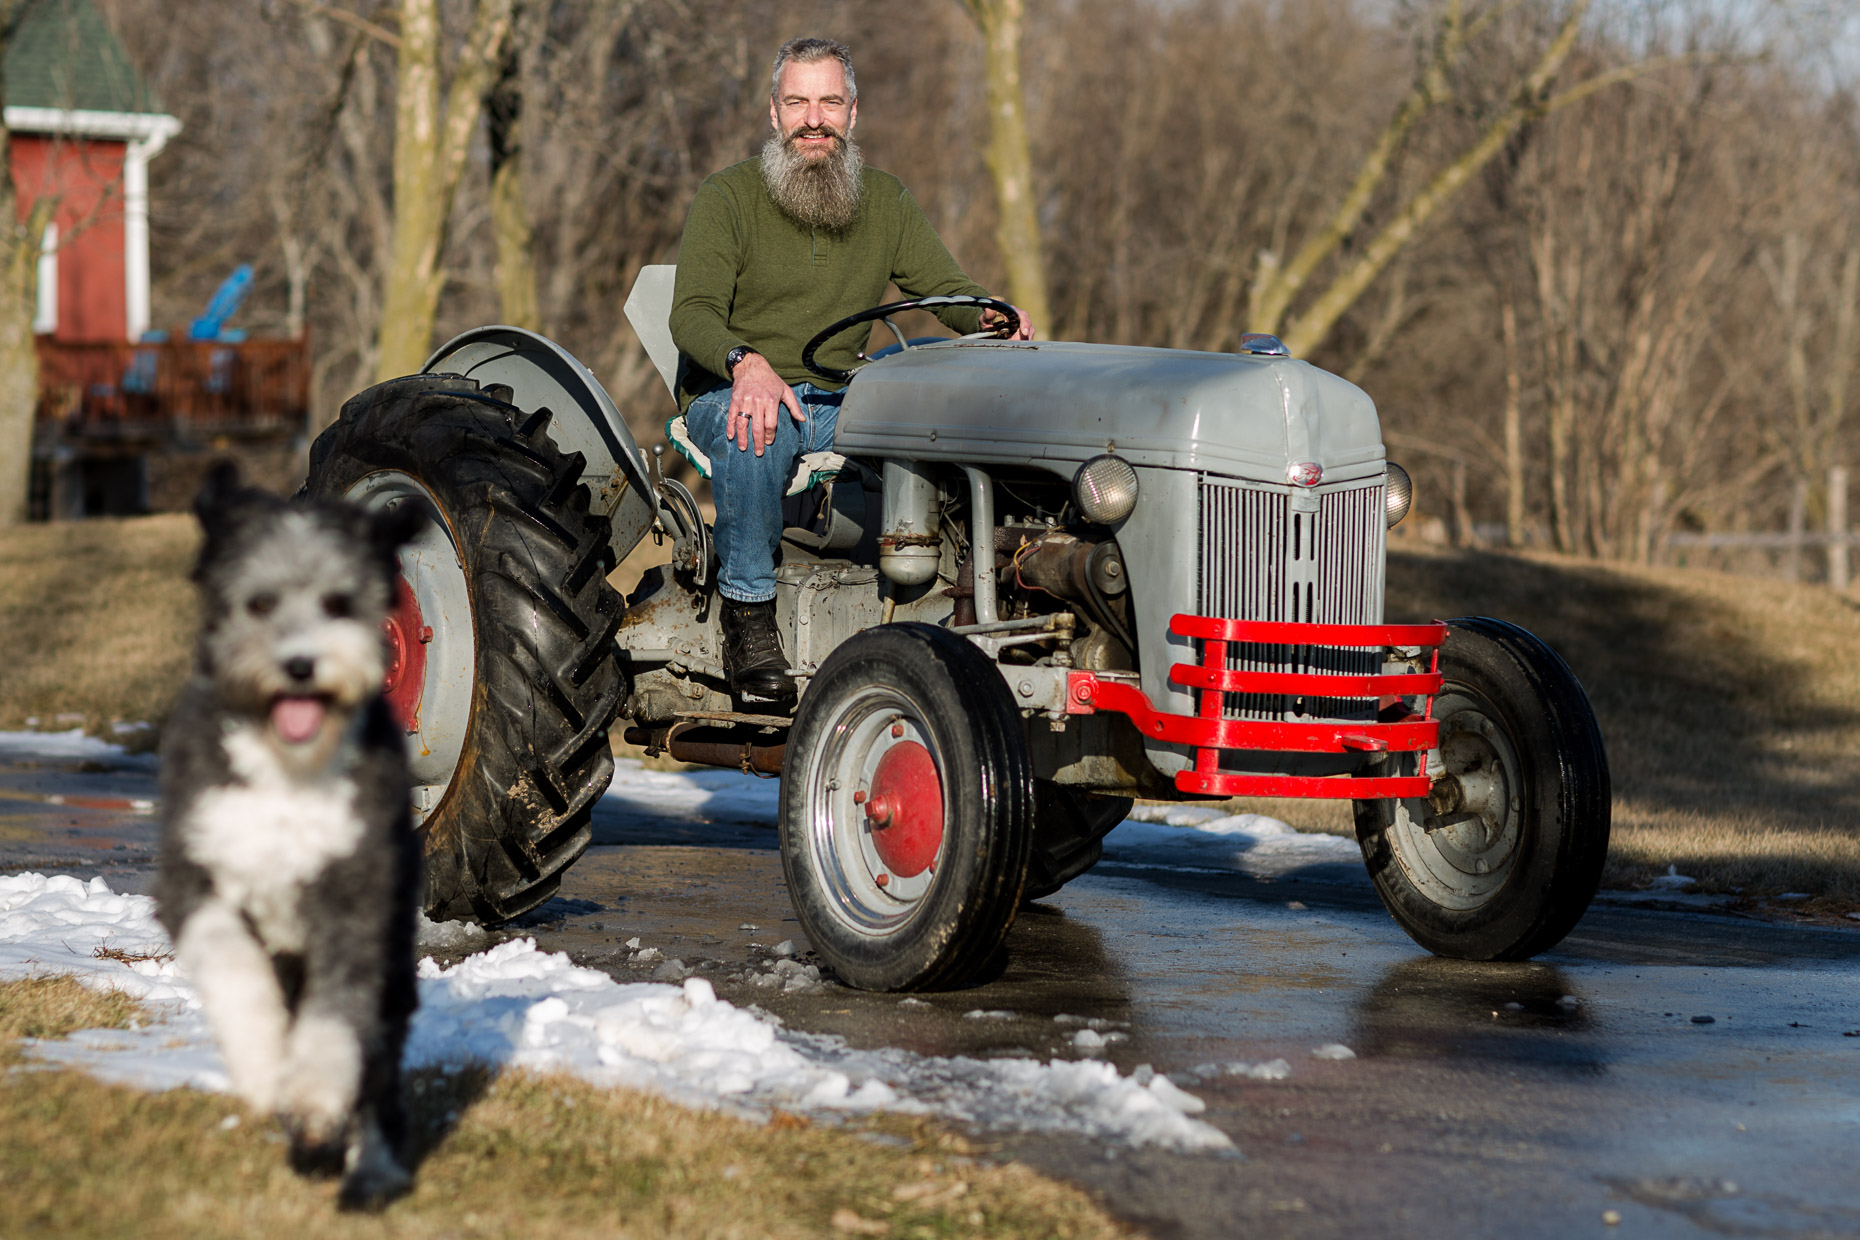 Peter Langhammer, IT director at Usingers Sausage, photographed at his home/hobby farm in Muskego, Wisconsin on January 20th, 2018.